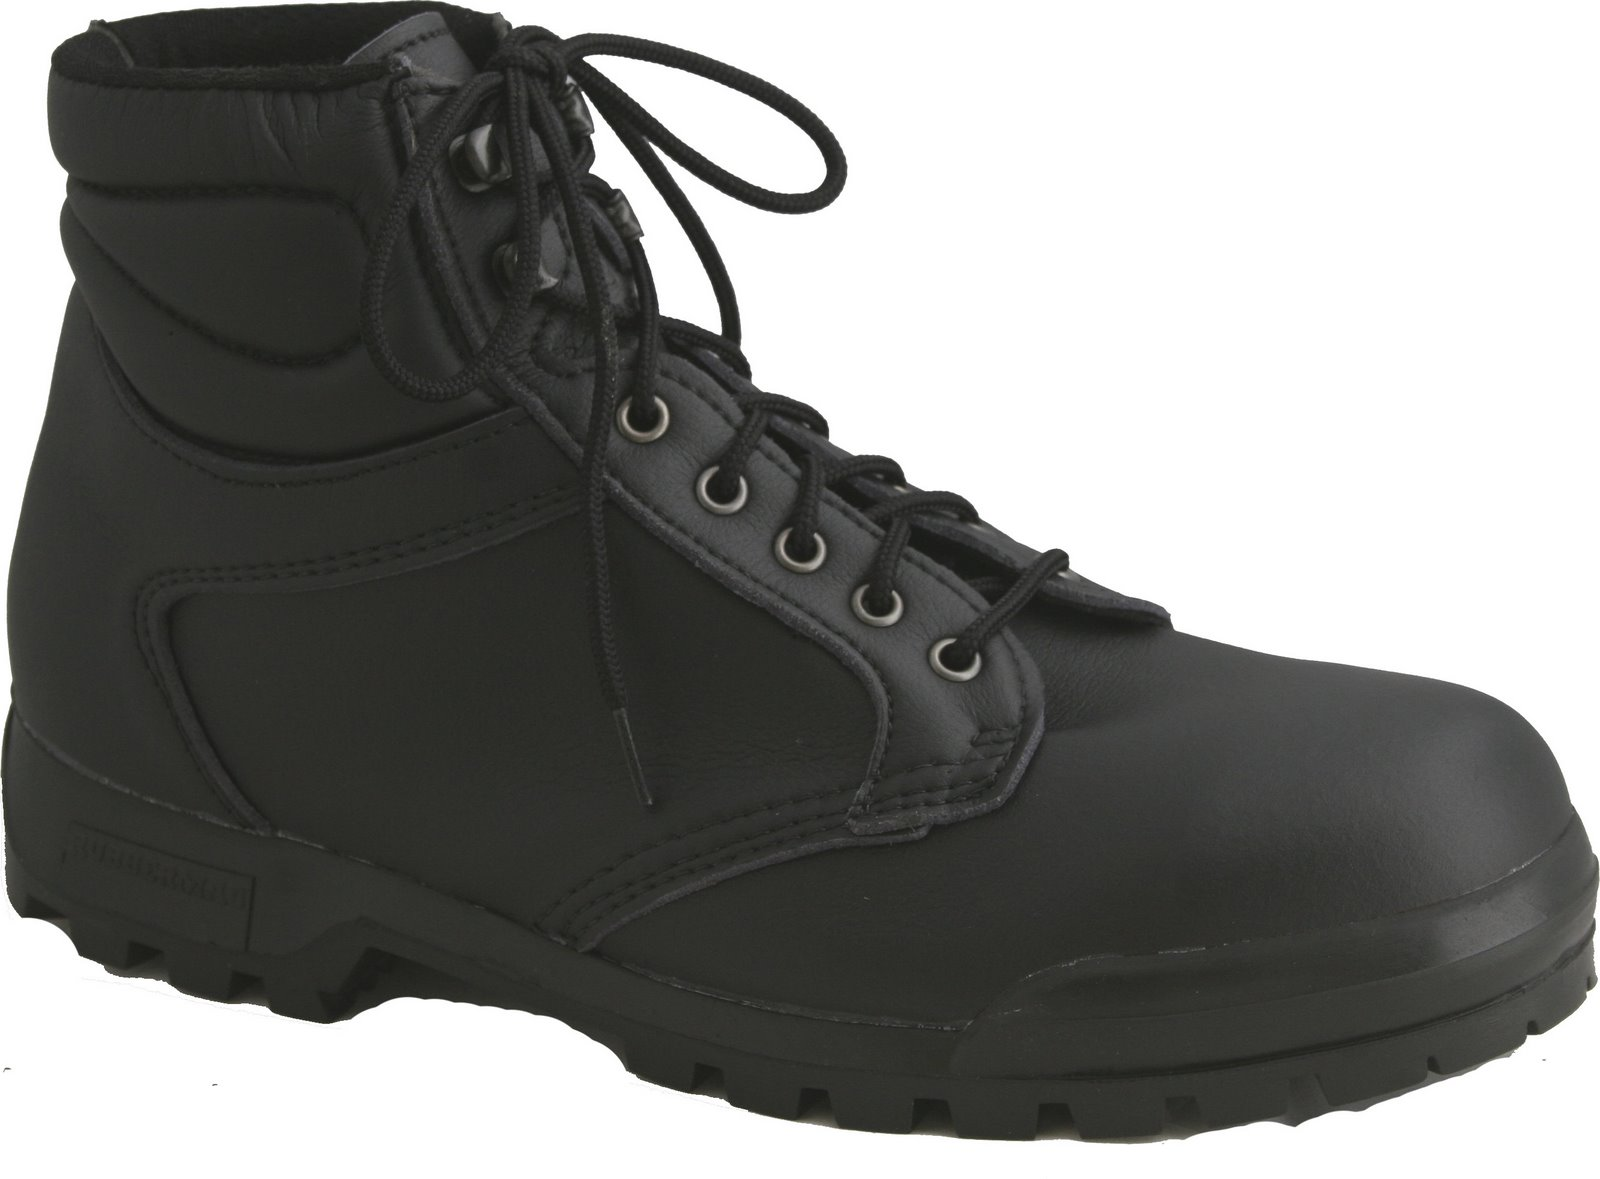 Vegan Steel Toe Capped Safety Boots